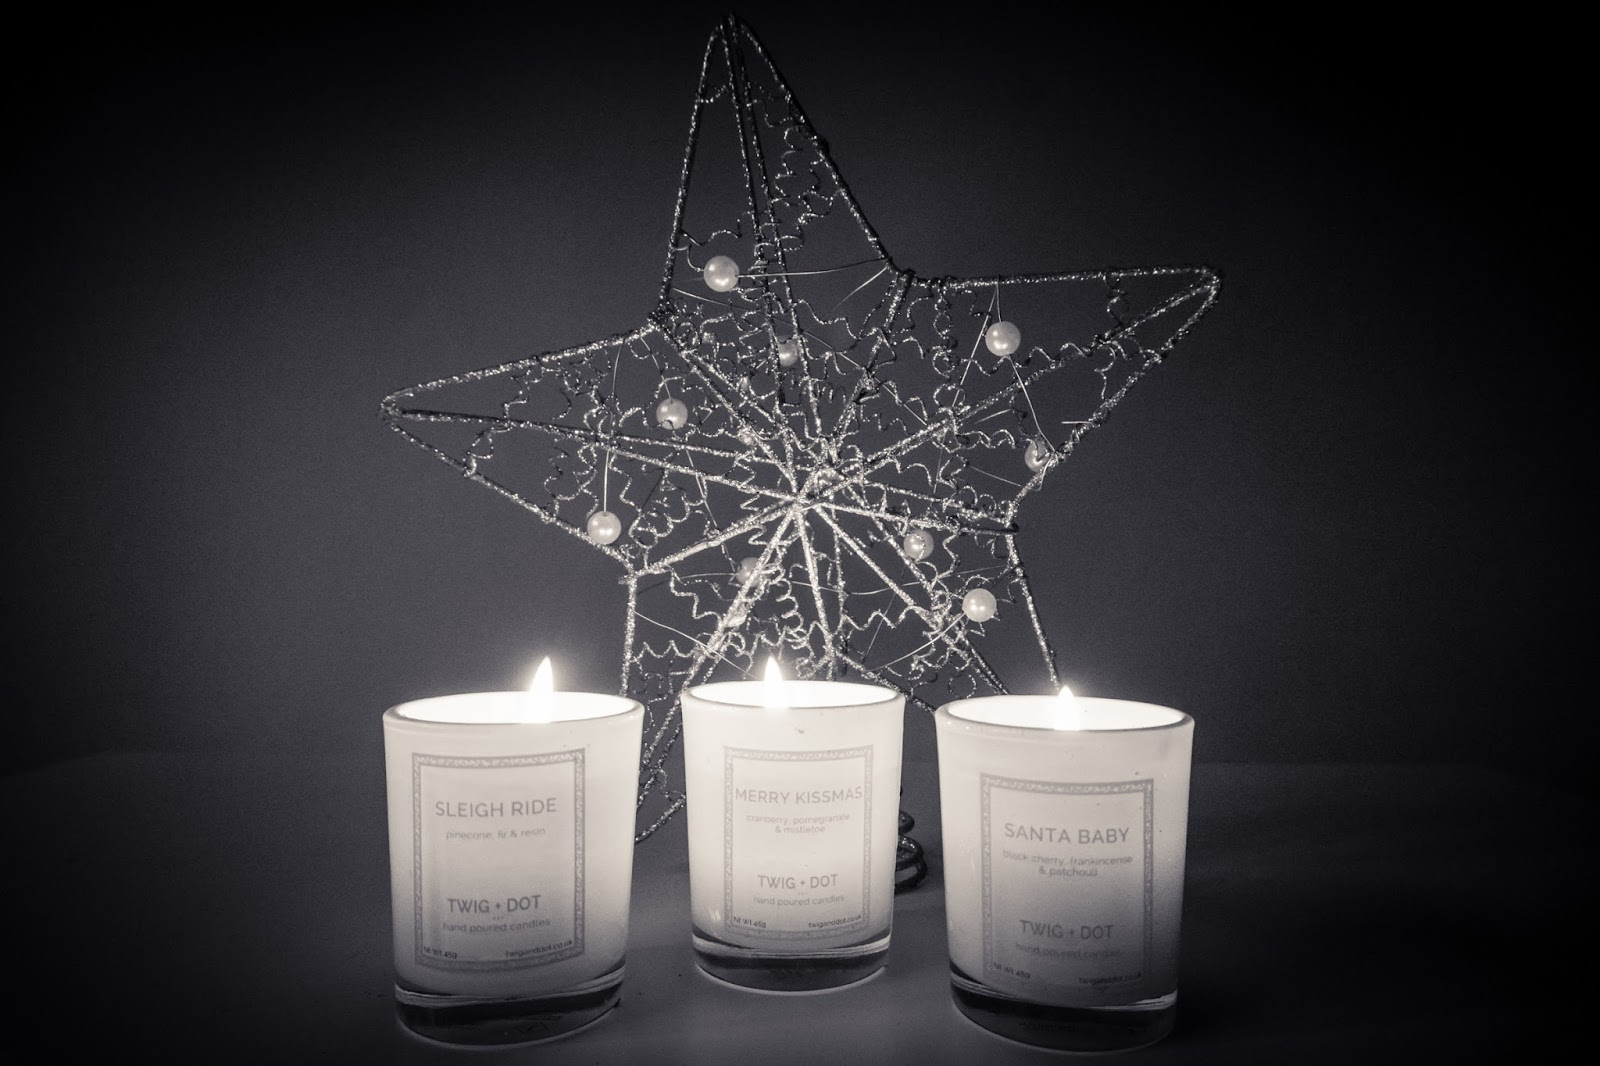 Twig + Dot: The Christmas Candle Edit